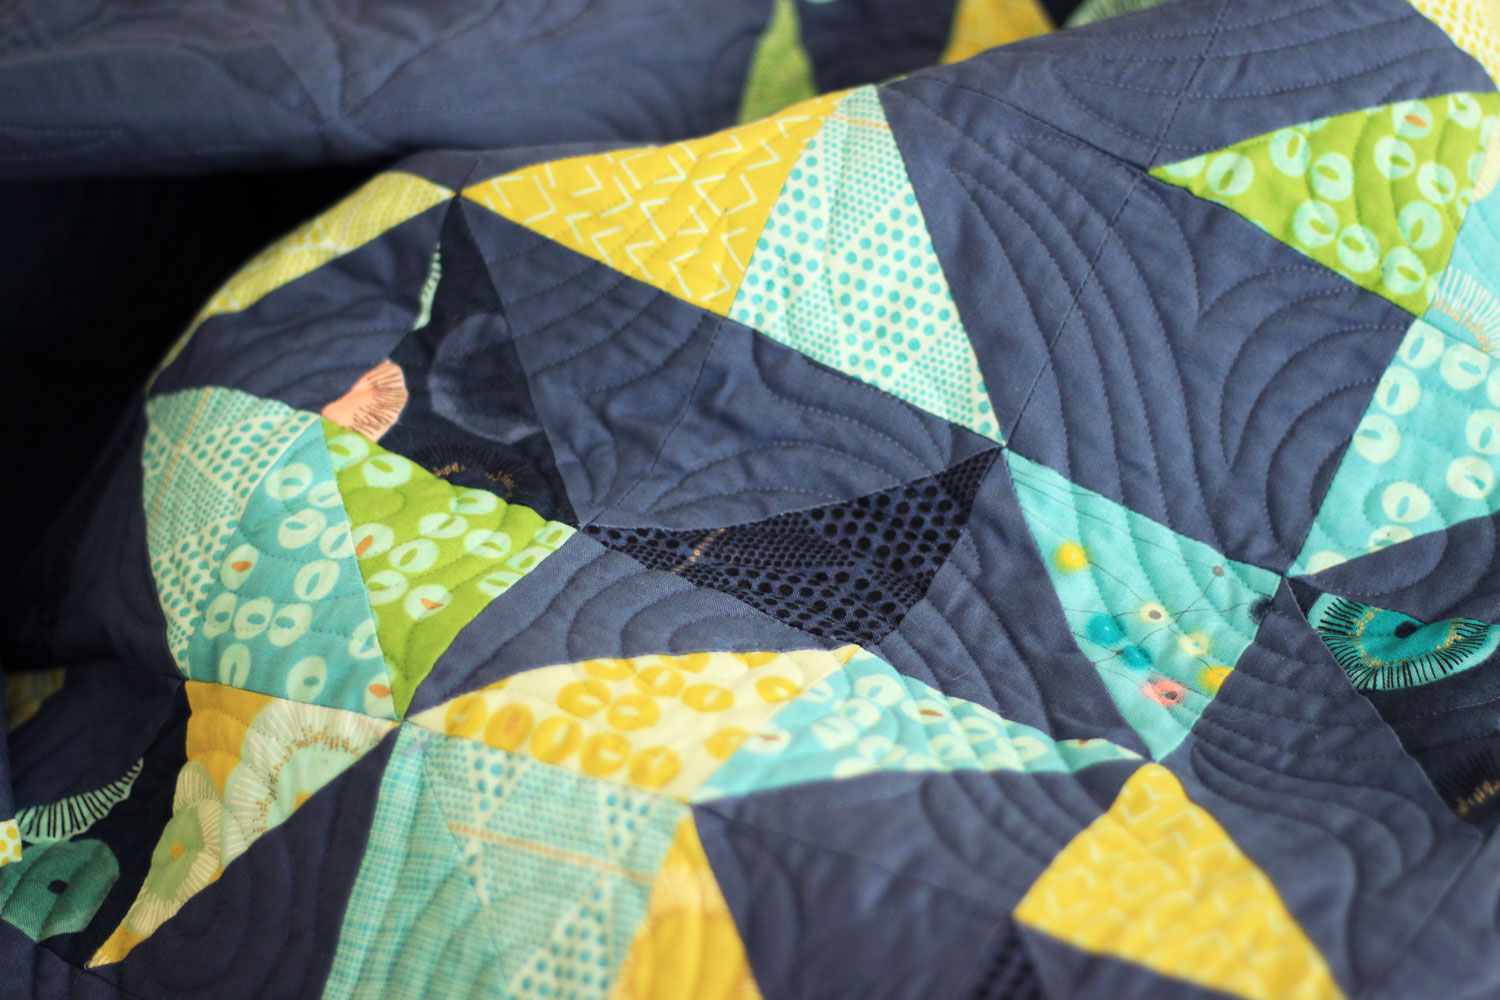 faded-quilt-pattern-by-zen-chic-03.jpg